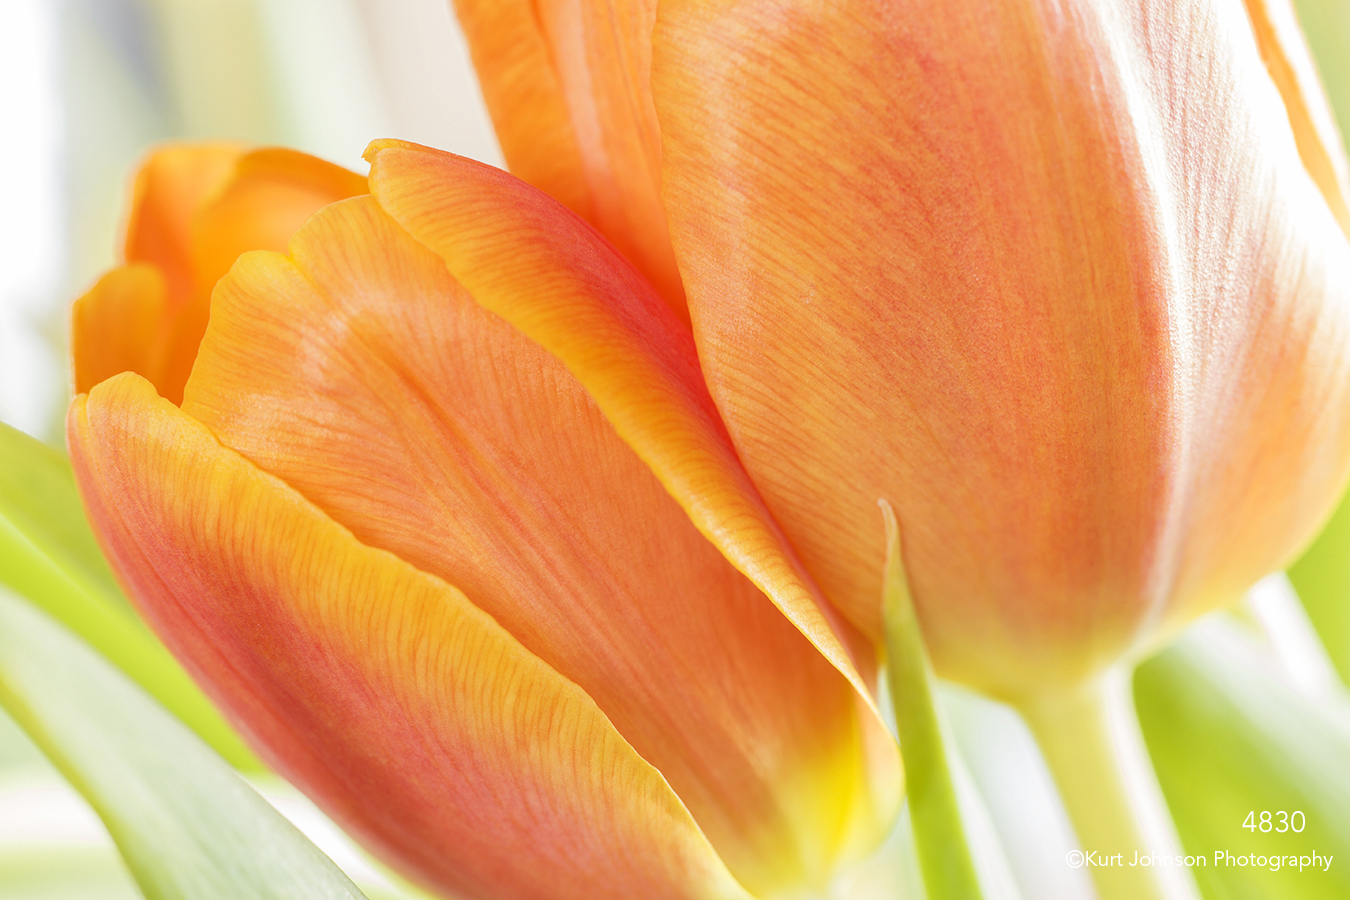 flower orange tulips close up texture details petals abstract